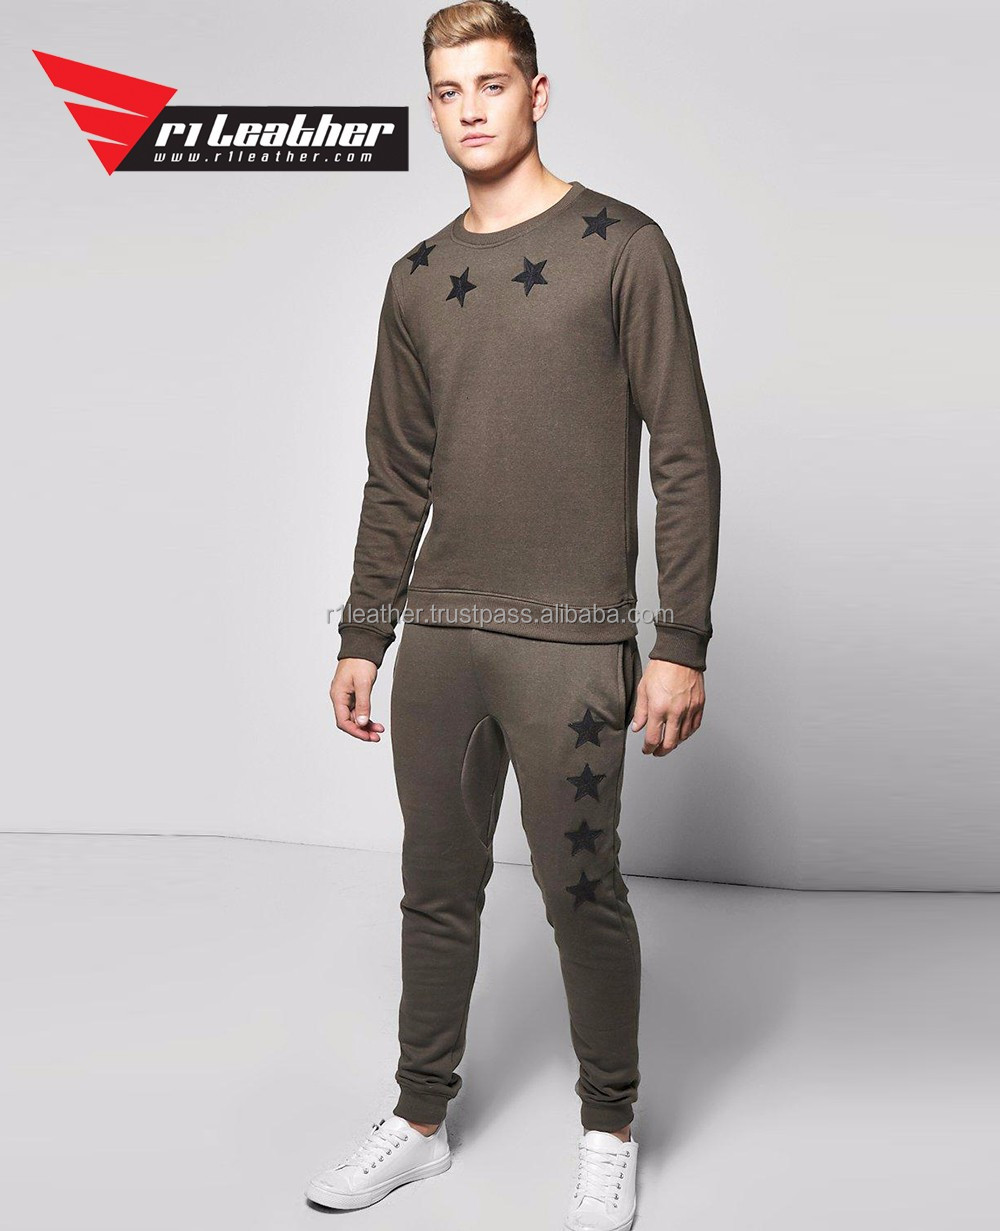 Grey men cotton sweatsuit sets elasticated waistband contrast trousers tracksuit sets